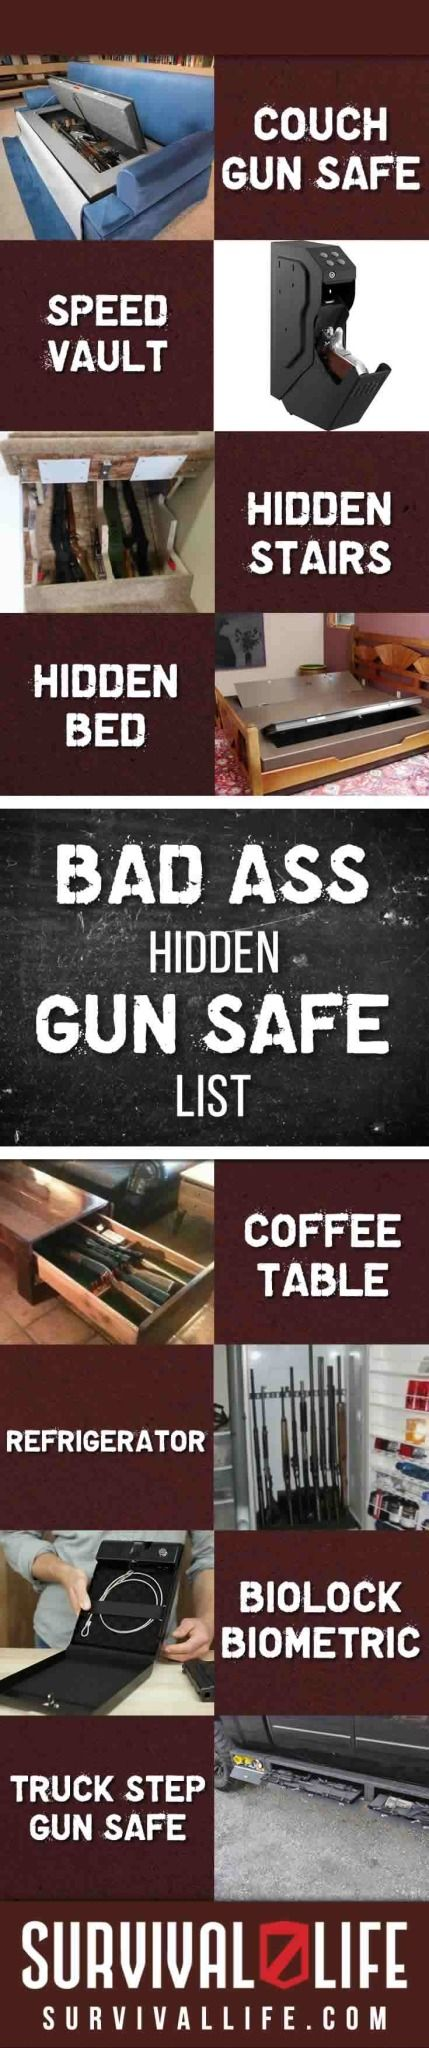 Badass Hidden Gun Safe List | Survival Life